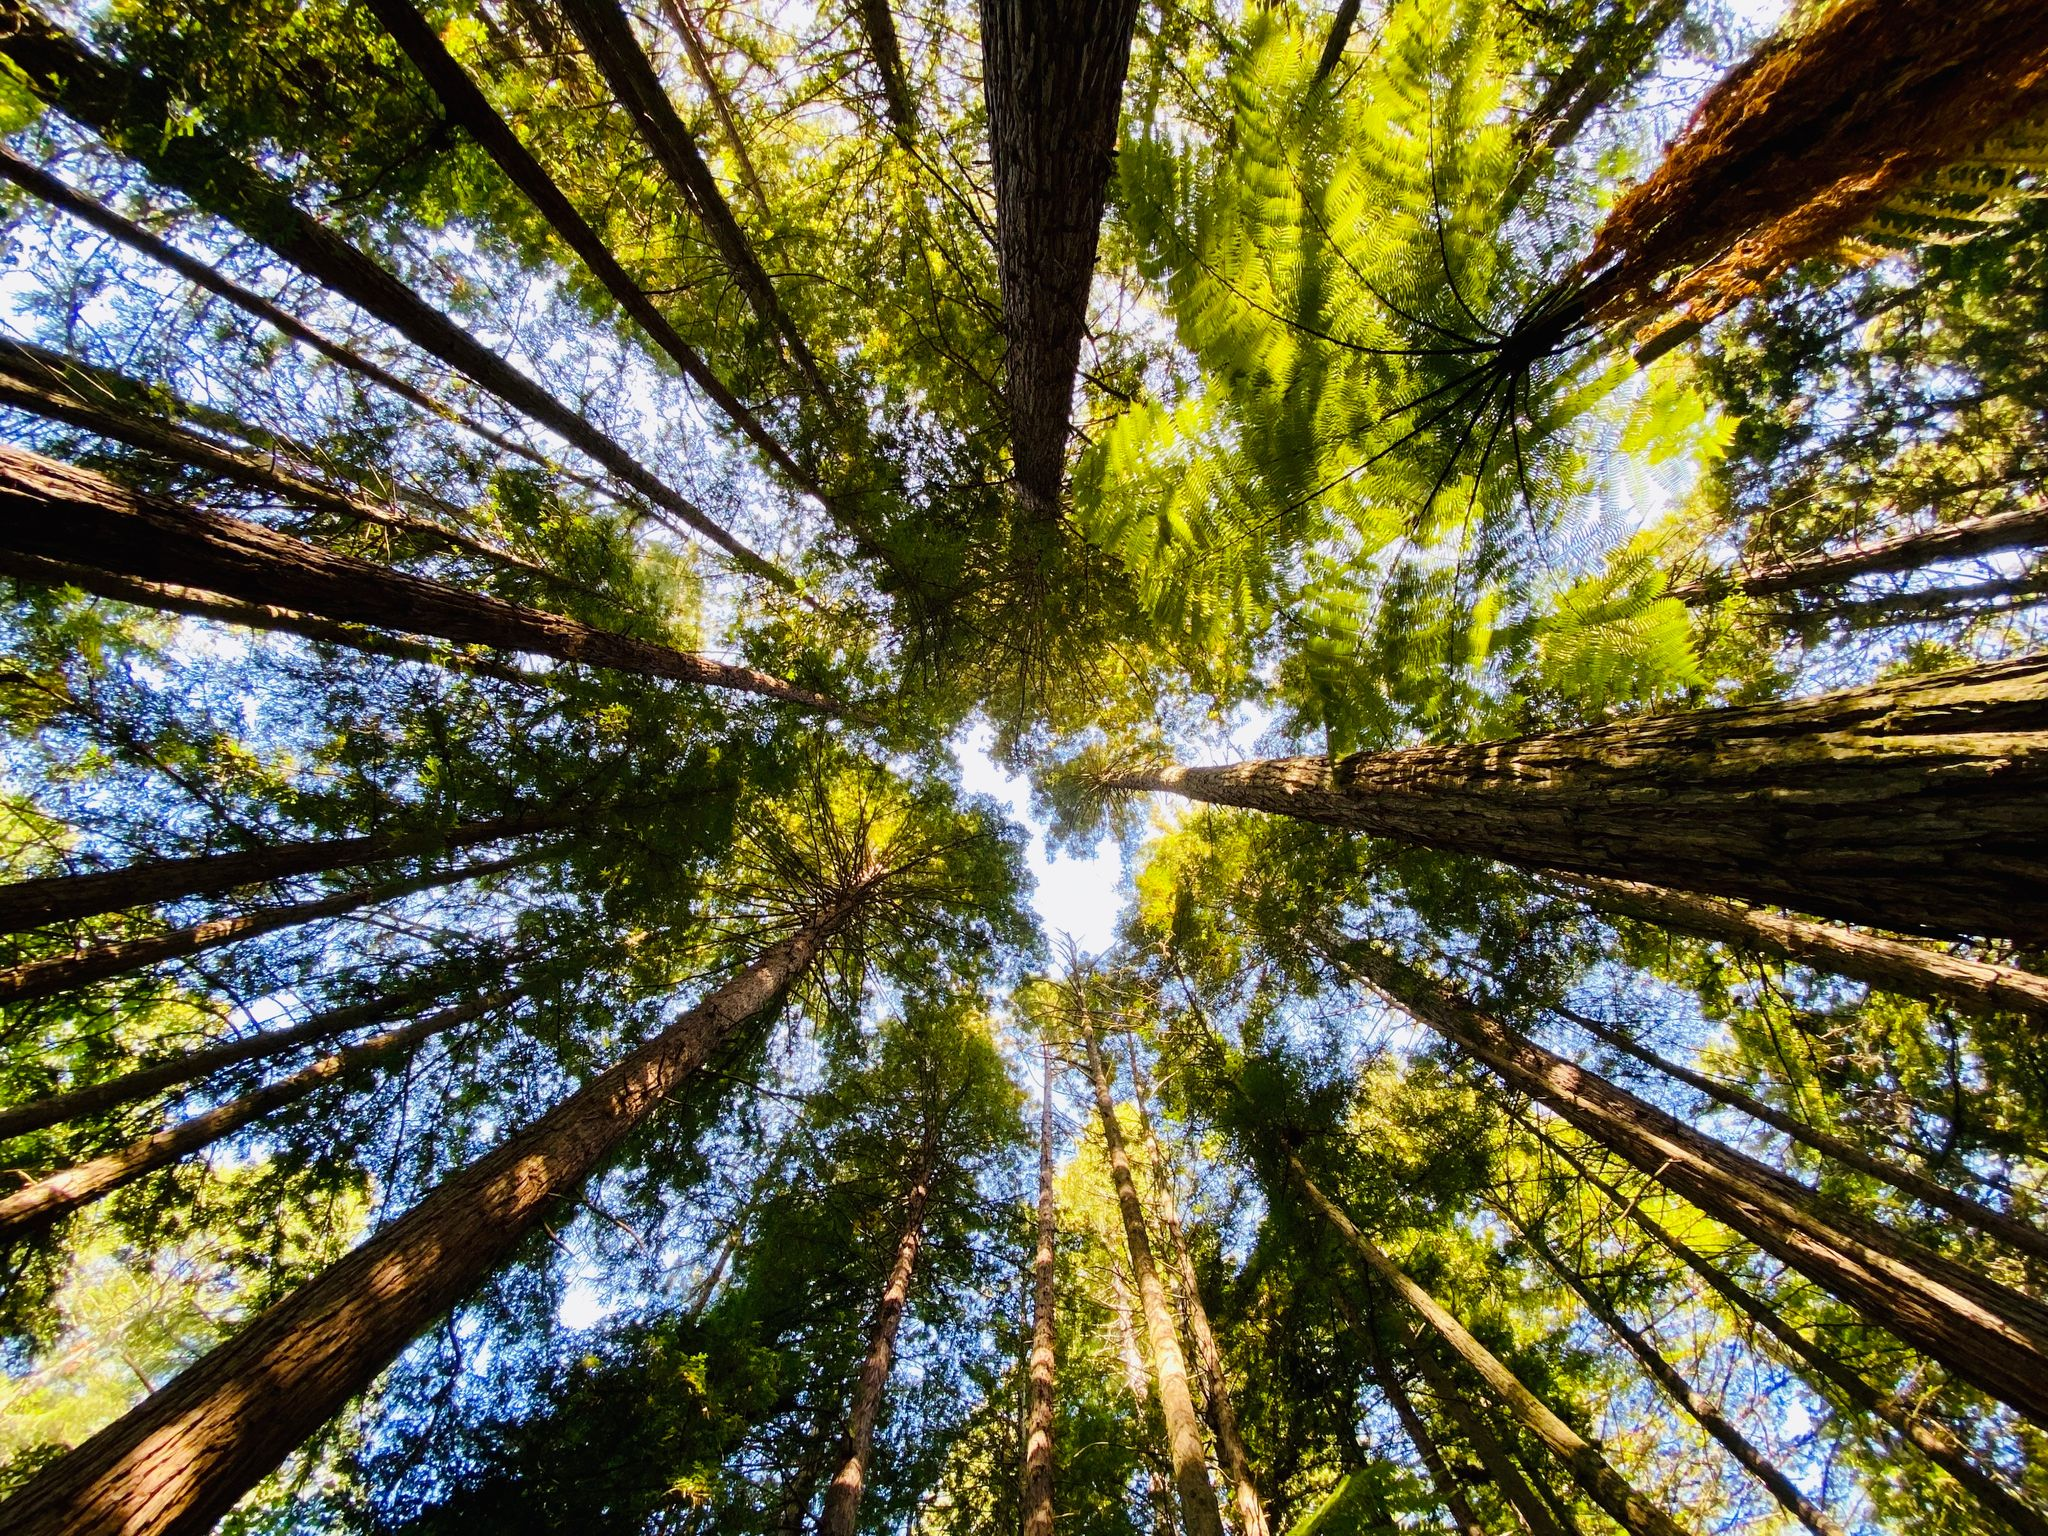 A photo looking directly up with a bunch of towering redwood trees all around.